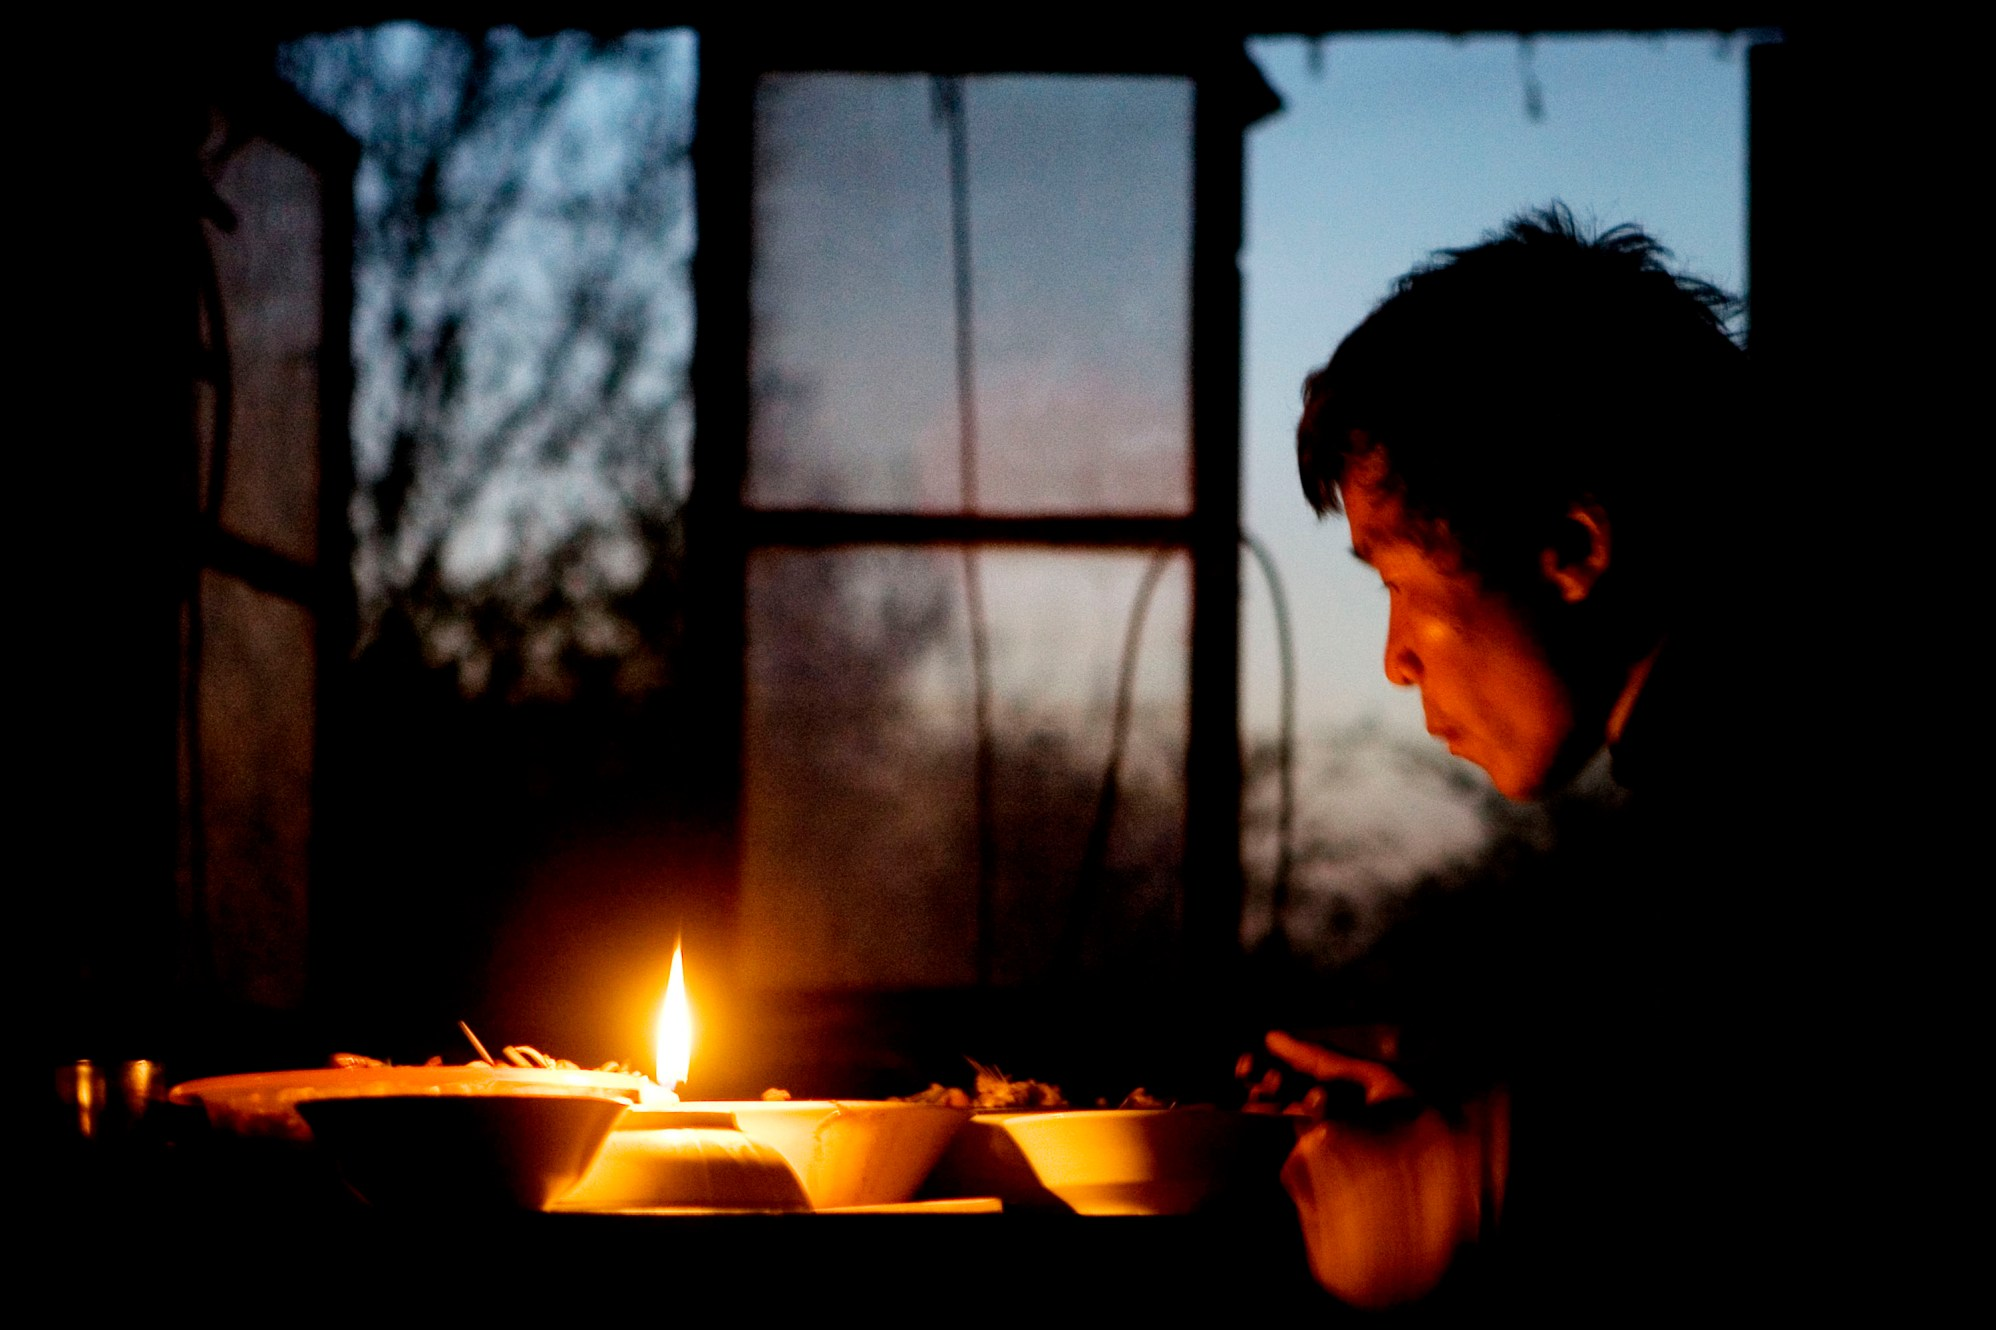 There's no electricity in the house, so Jiang Jichao eats in the light of a candle. In the background you can hear a small radio playing traditional, Chinese music.